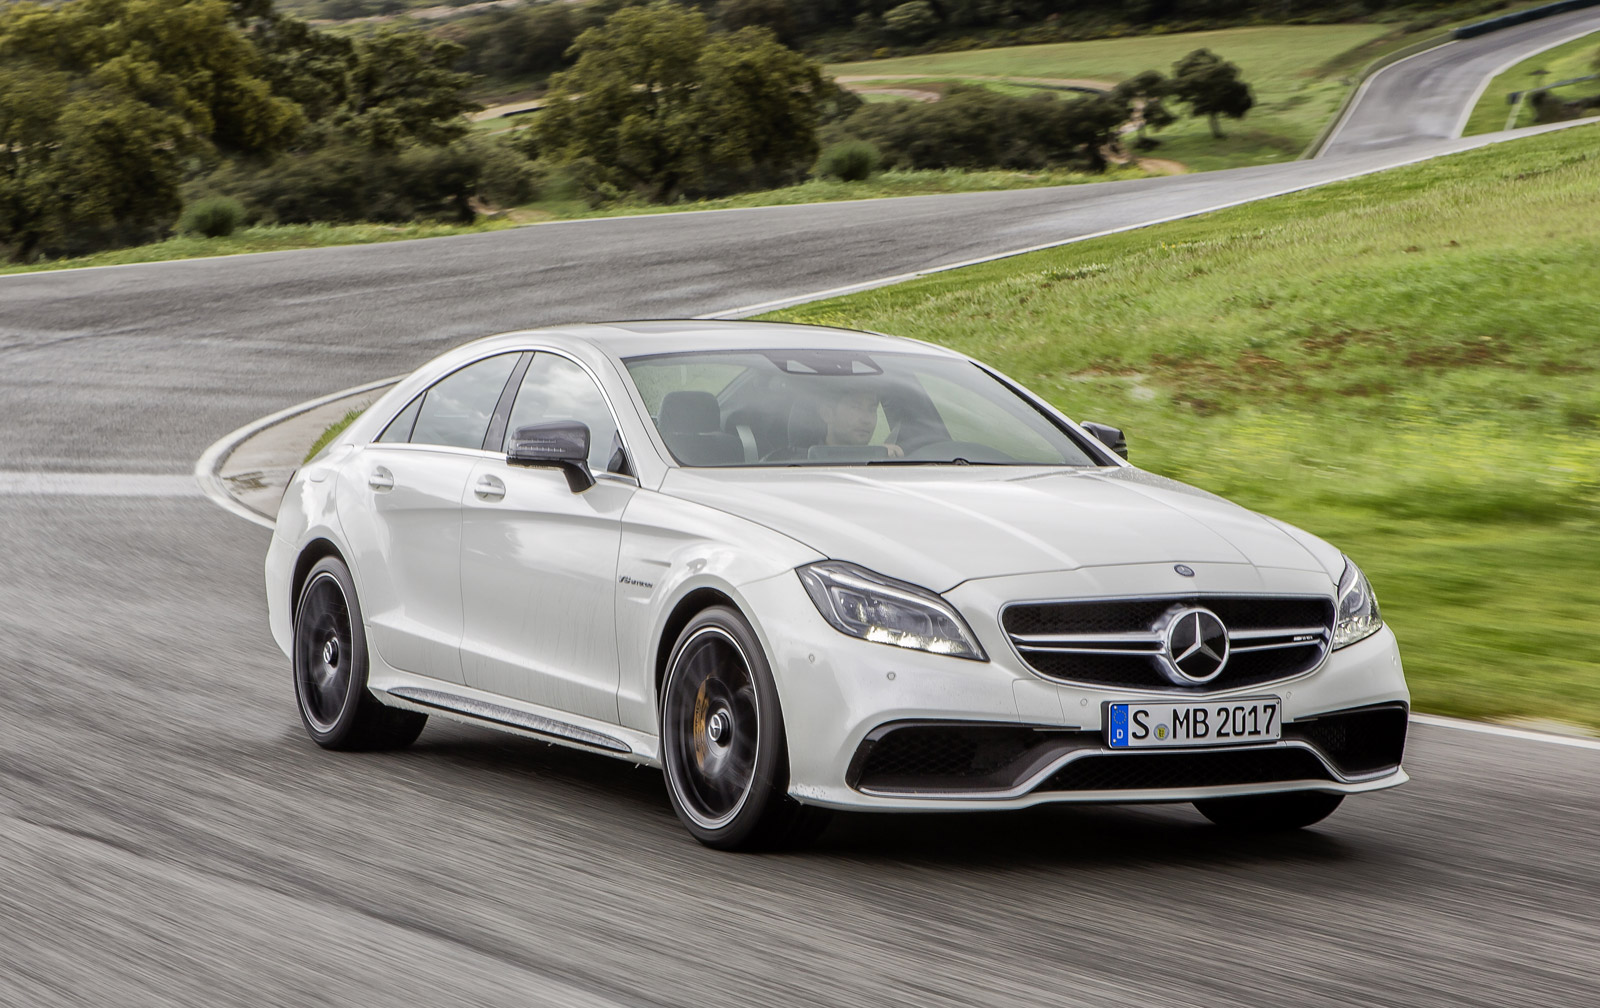 2015 mercedes benz cls class and cls63 amg revealed. Black Bedroom Furniture Sets. Home Design Ideas